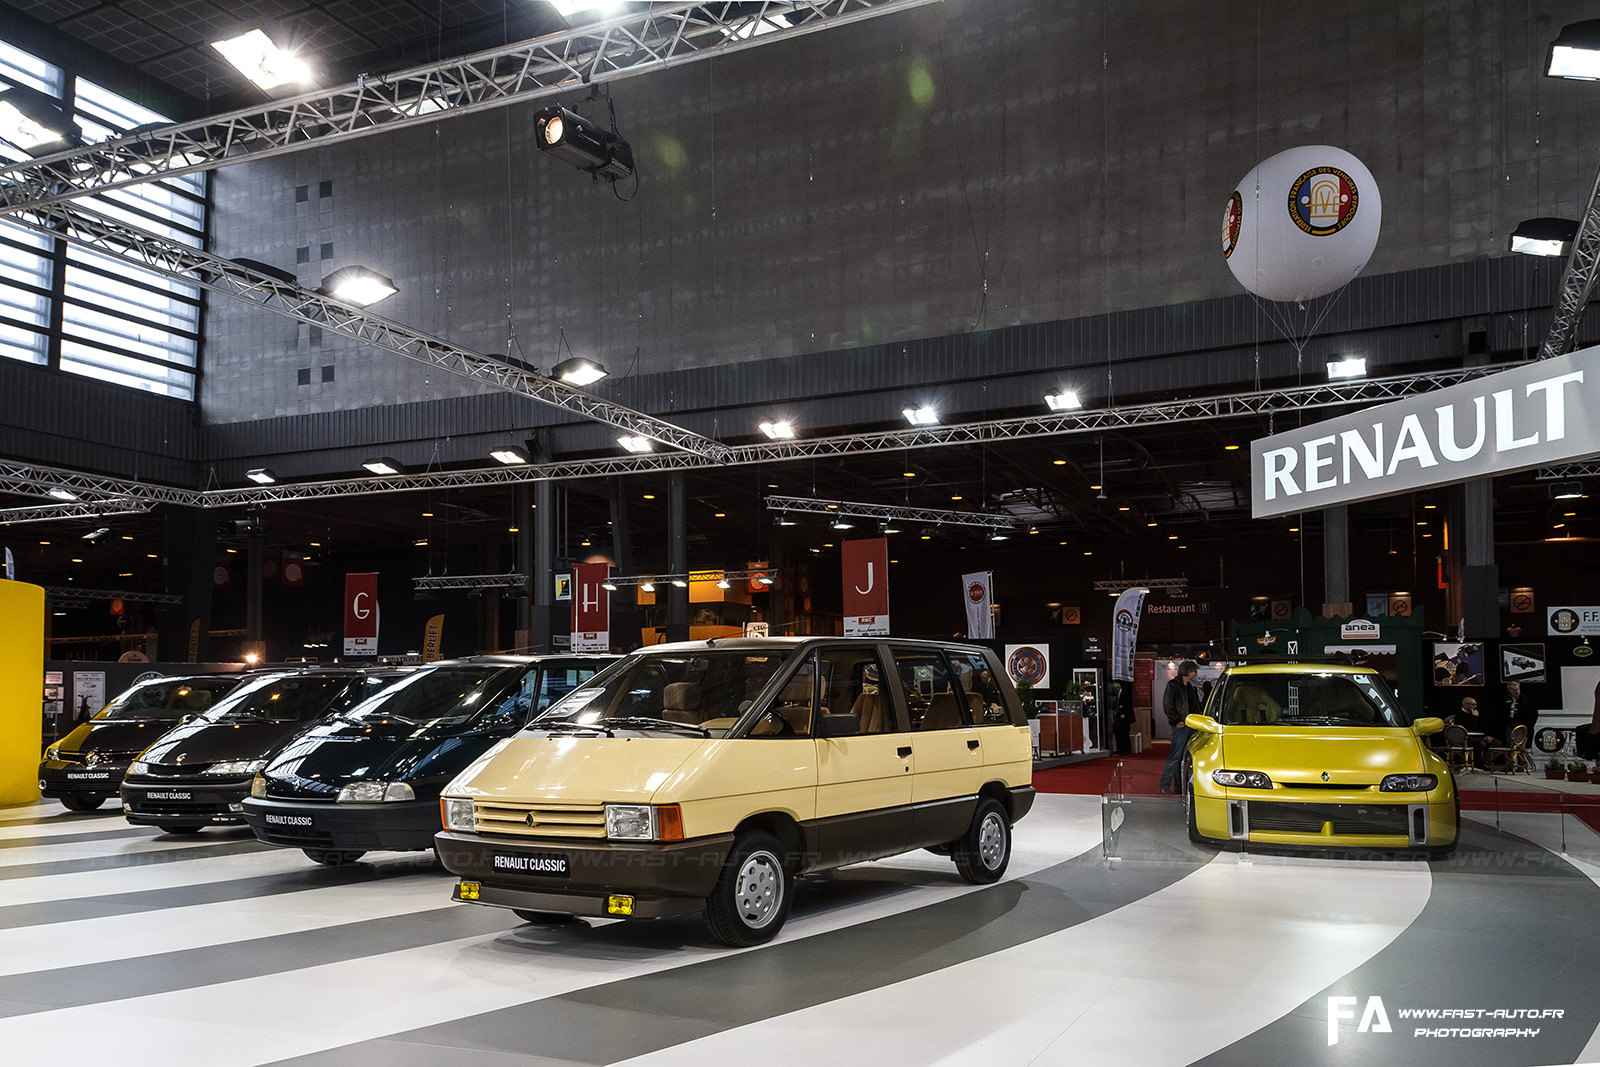 salon retromobile fevrier 2014 renault espace retromobile 2014 paris. Black Bedroom Furniture Sets. Home Design Ideas